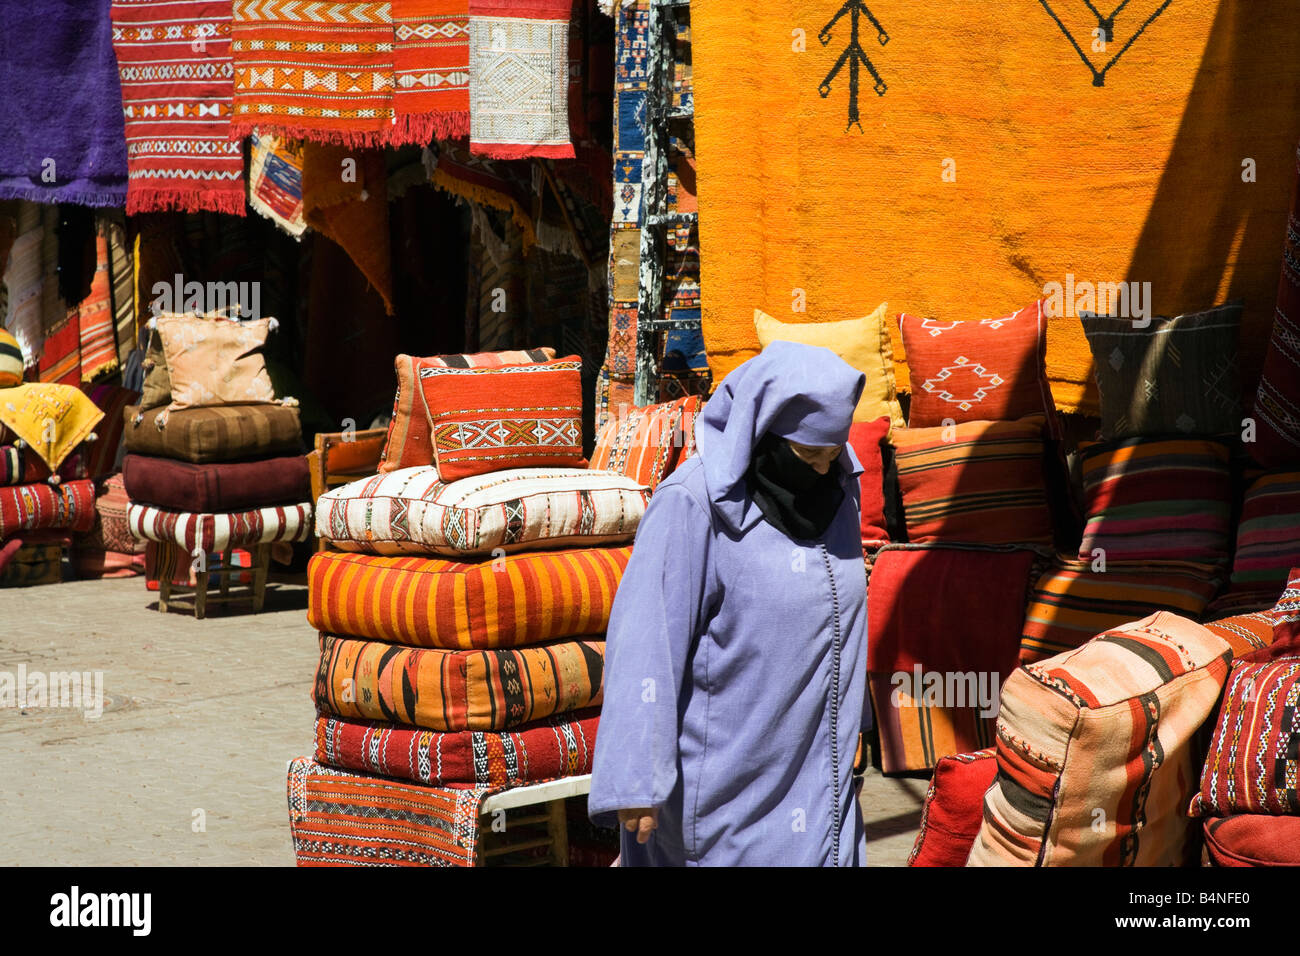 Shop selling Moroccan rugs and carpets - Stock Image